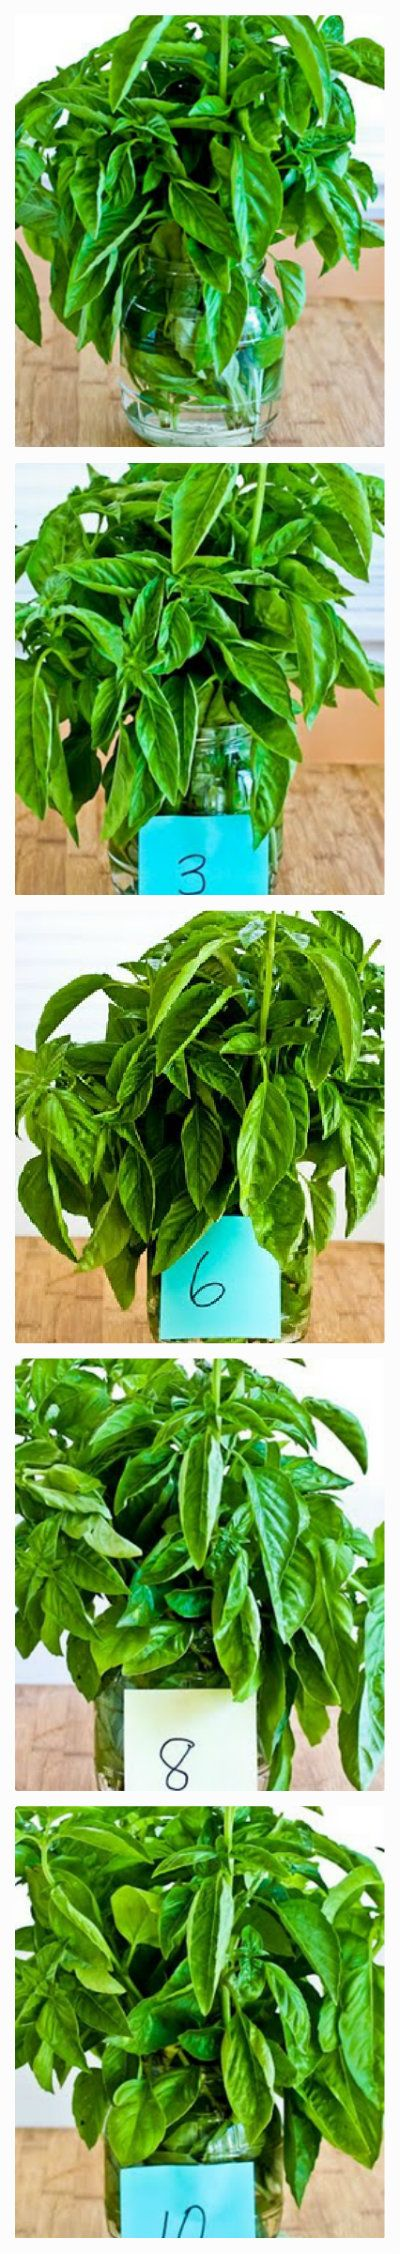 How To Preserve Fresh Basil From Kalynskitchen This Trick Will Keep Good